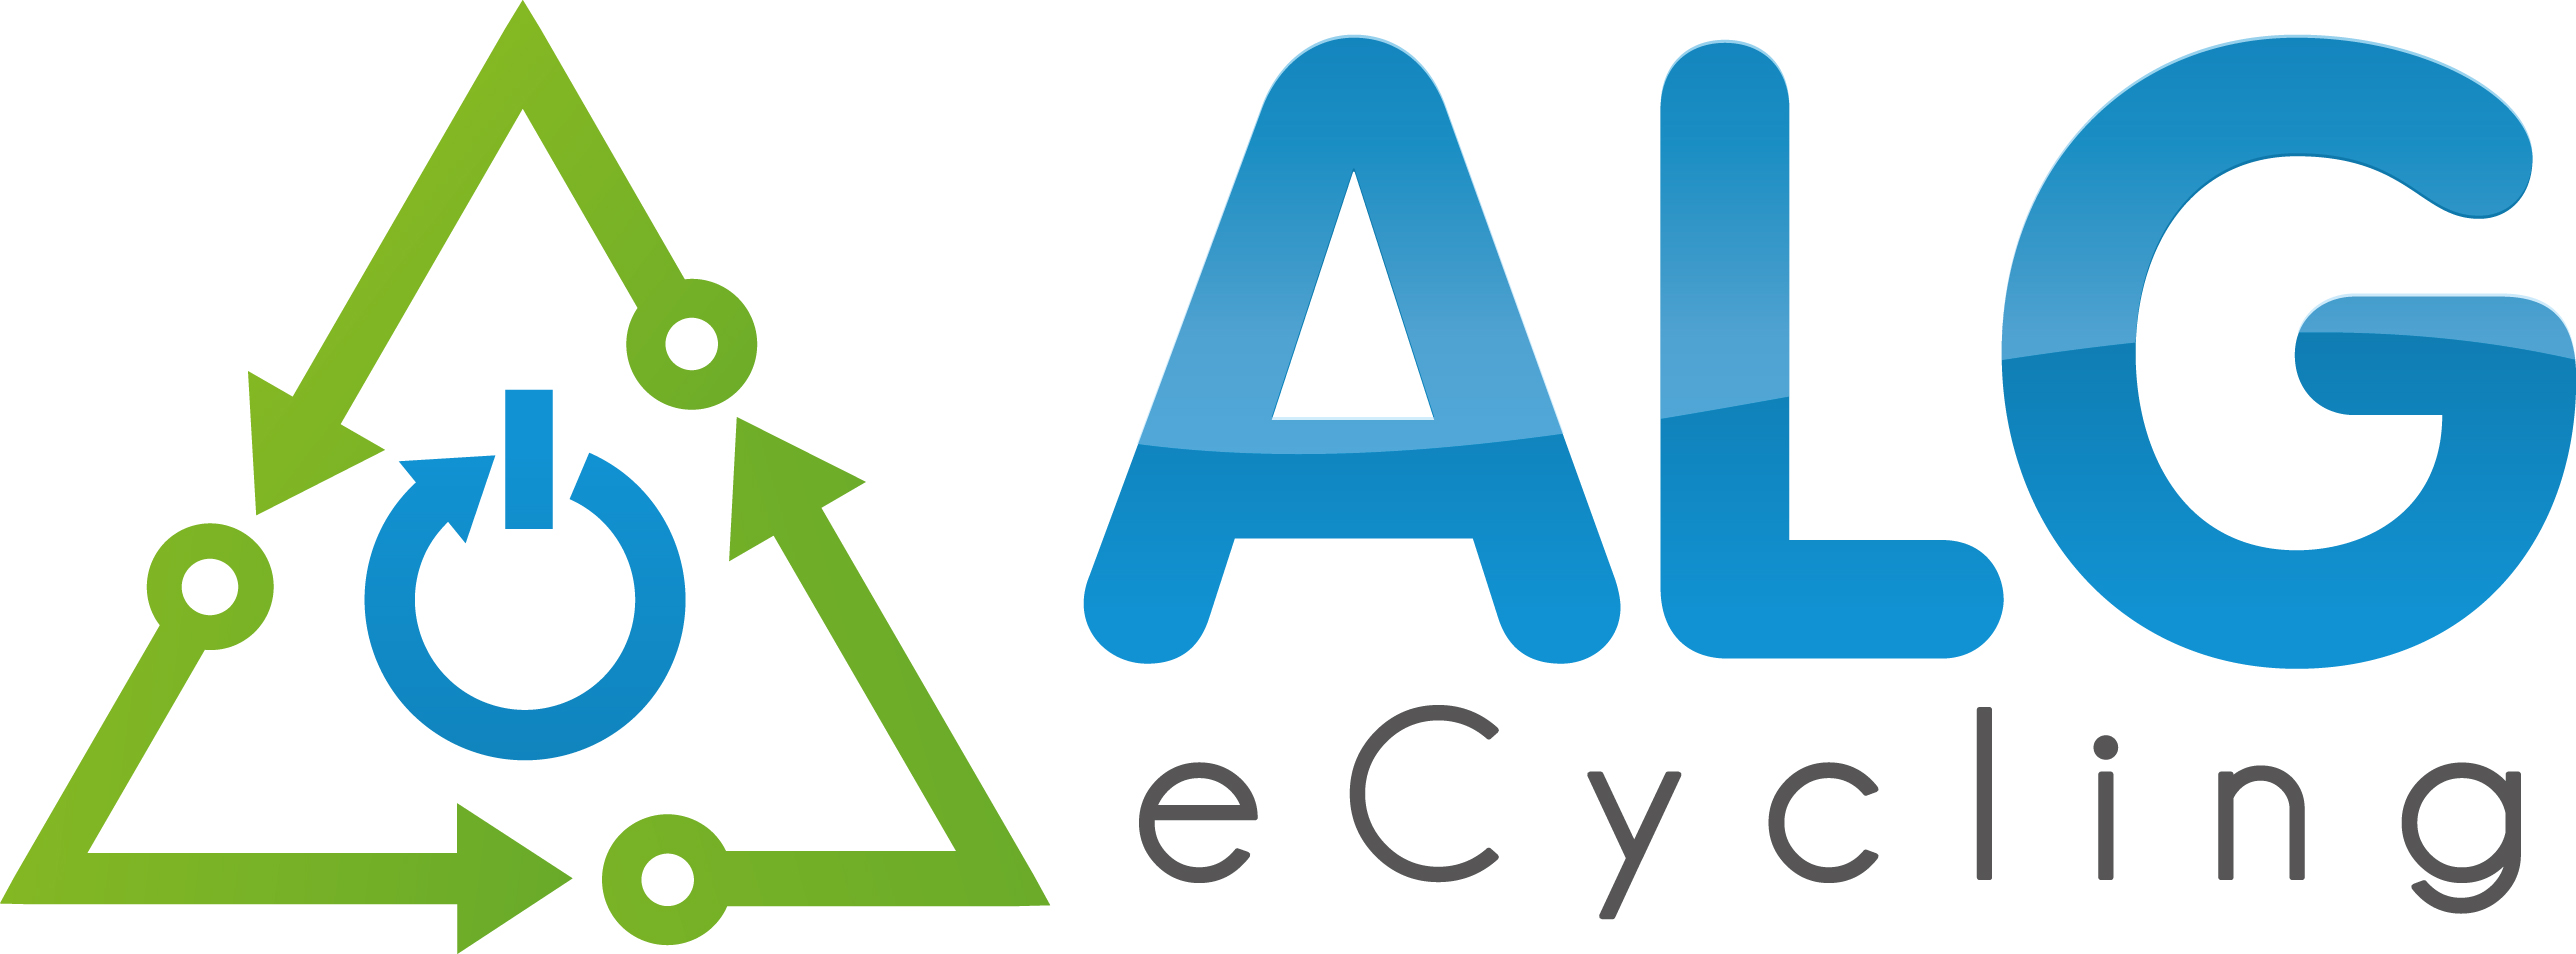 Logo ALGecycling.jpg